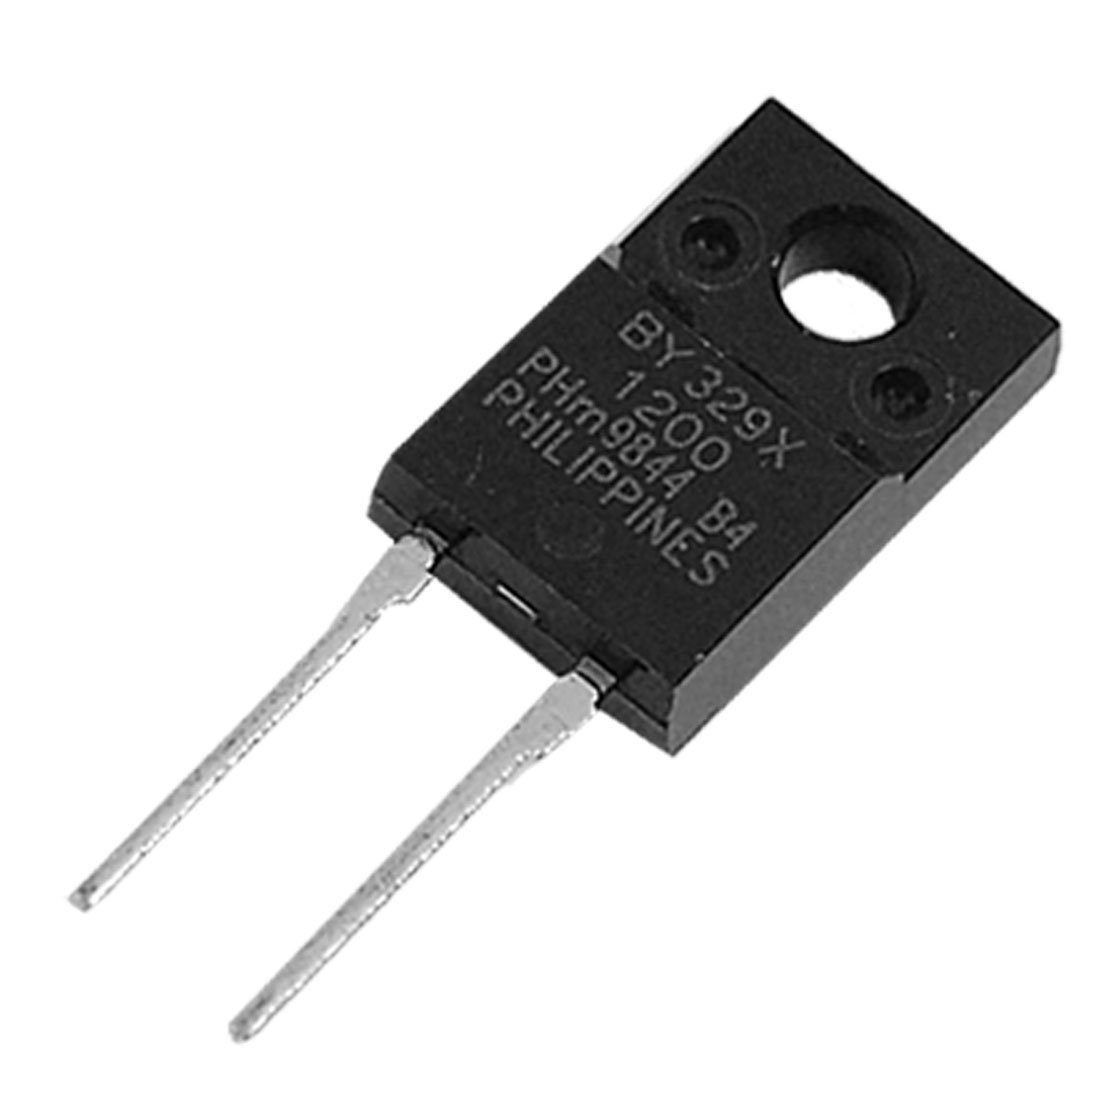 BY329X-1200 T0220 Package 1200V 8A Rectifier Diode